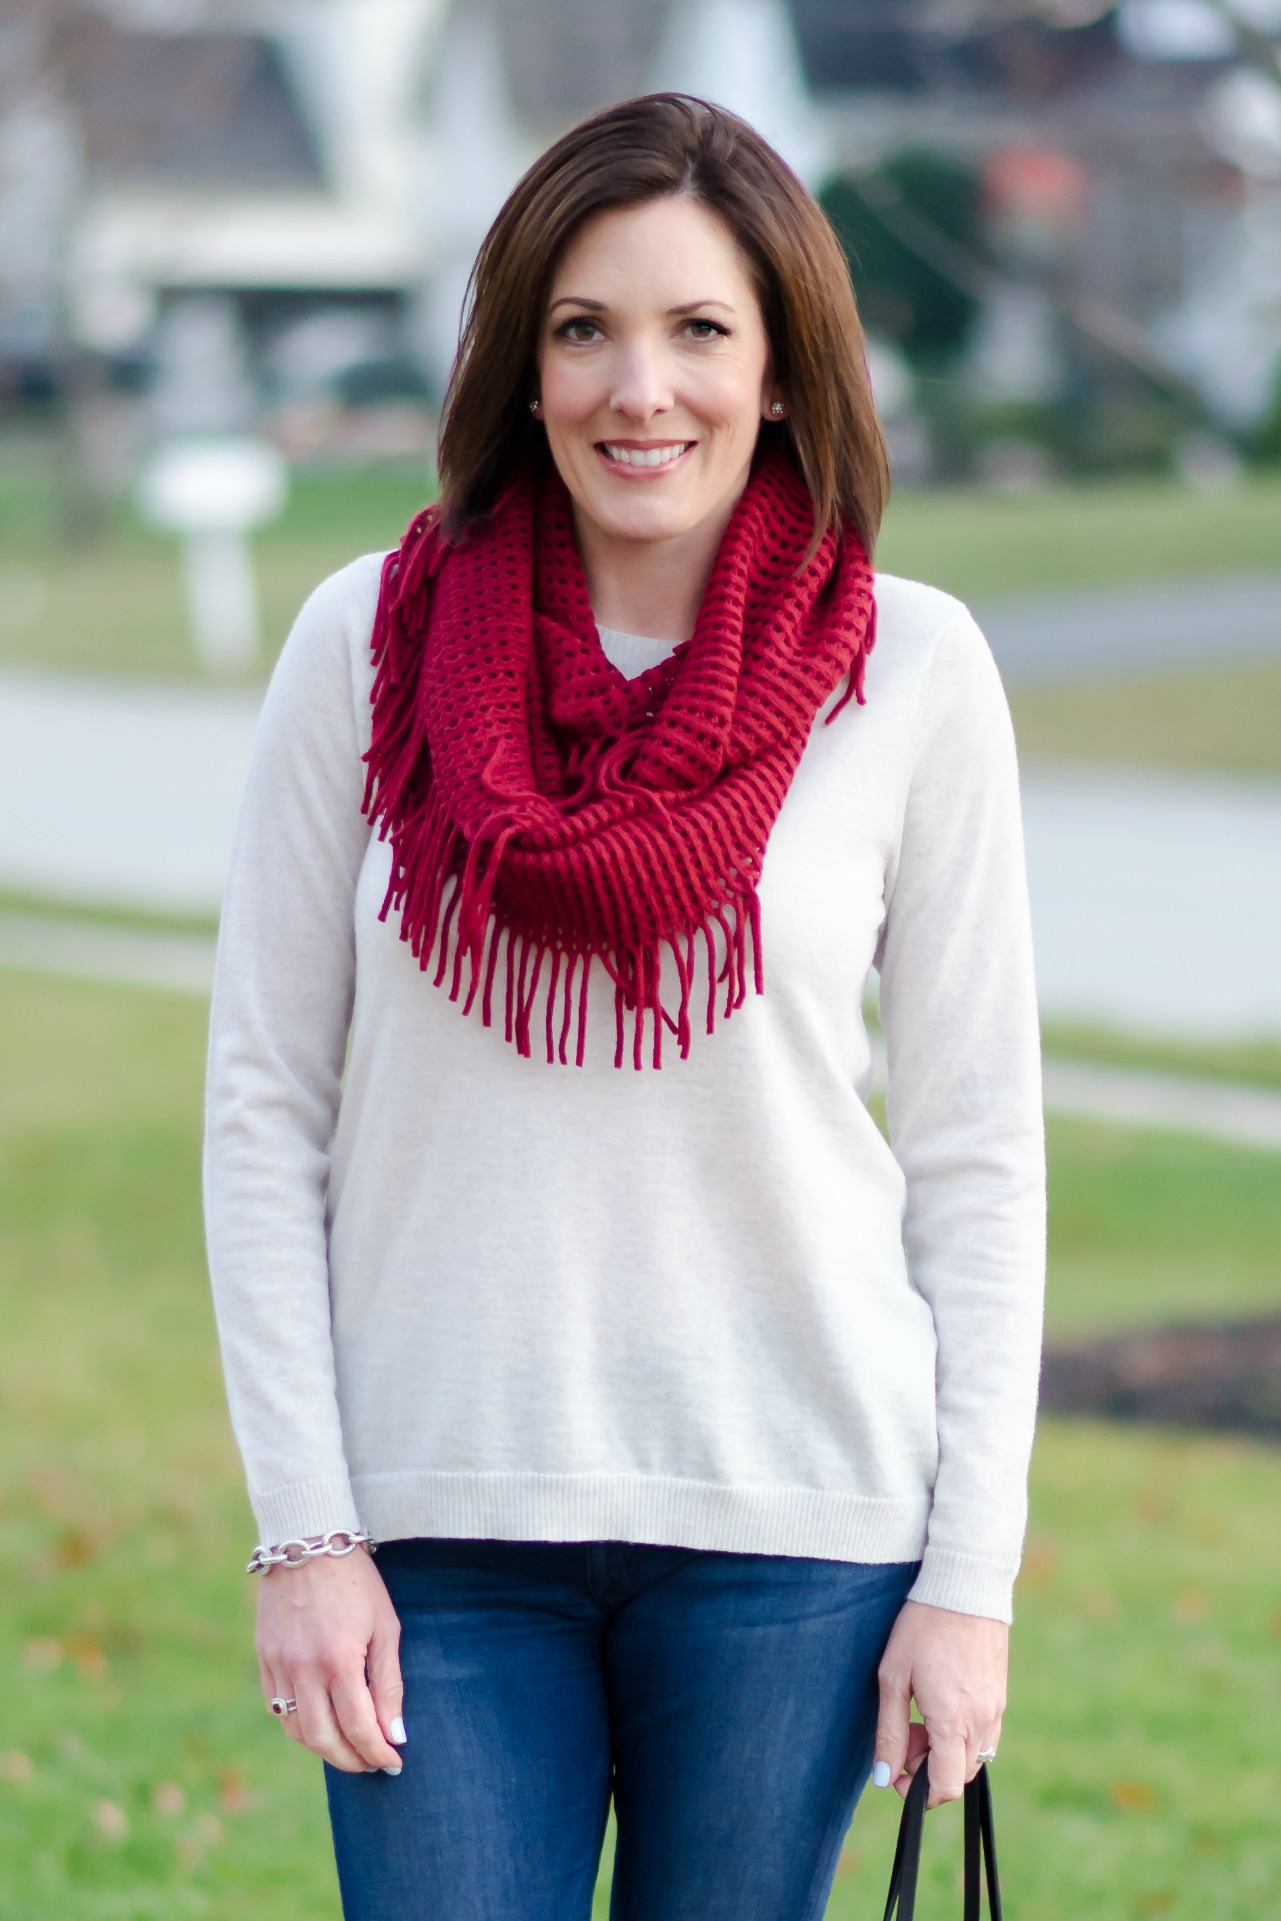 Casual Winter Outfit: Red Fringe Scarf, Relaxed Fit Oatmeal Sweater, Cropped Skinnies and Converse